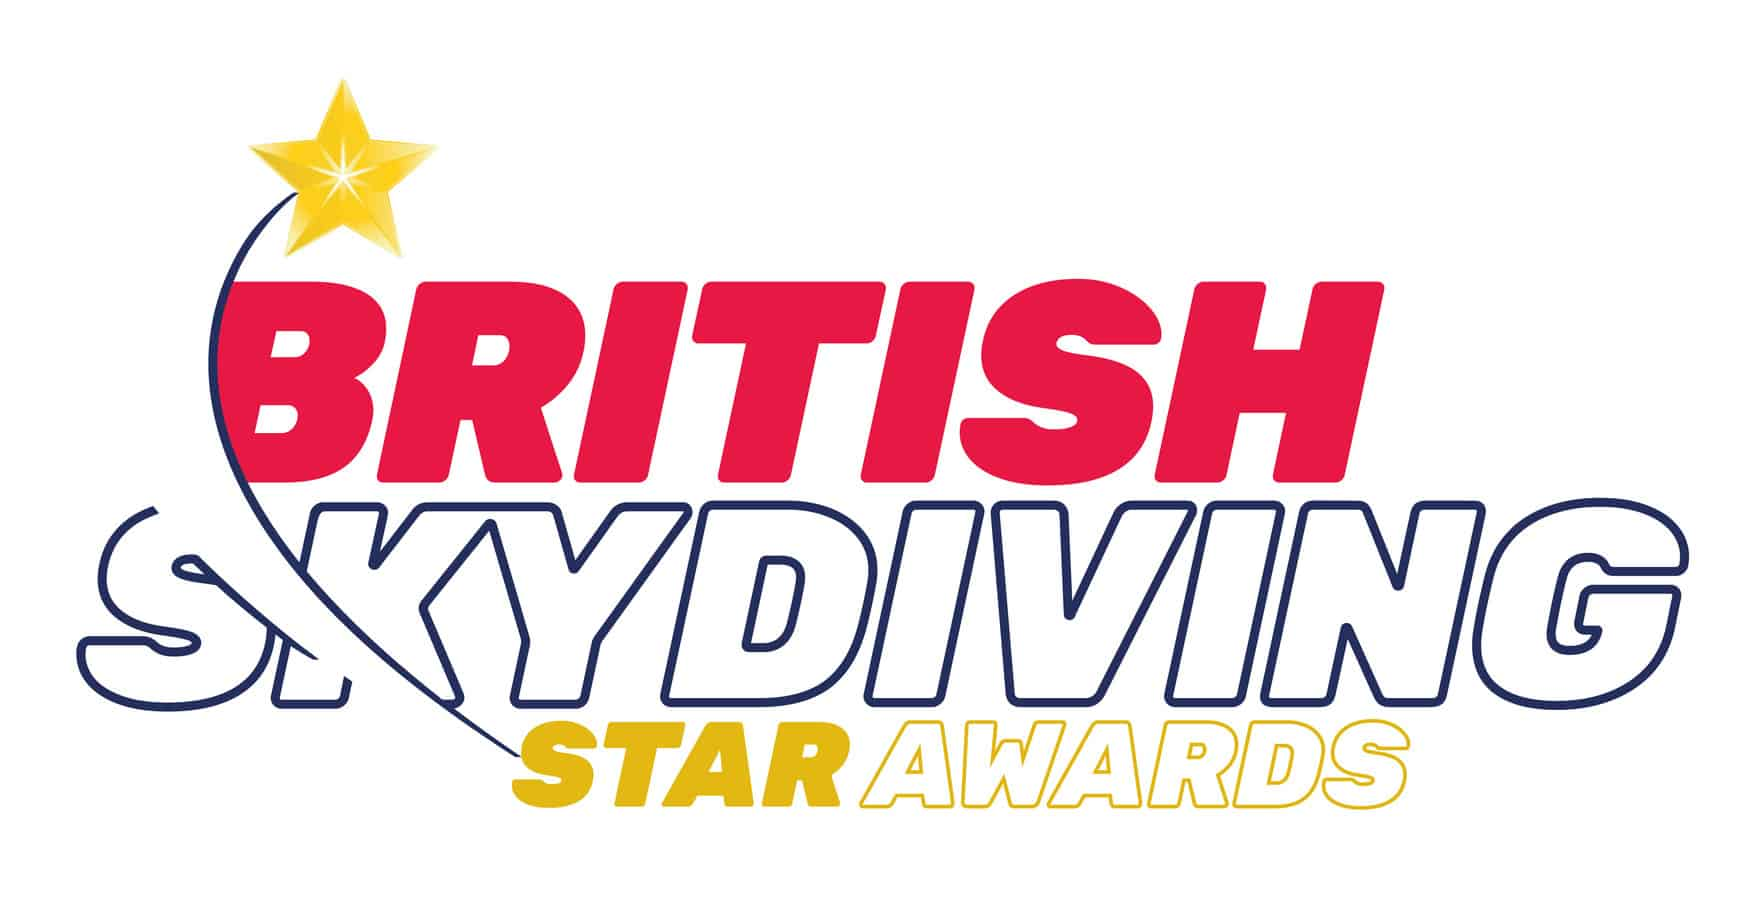 British_skydiving_Star Award rgb-01